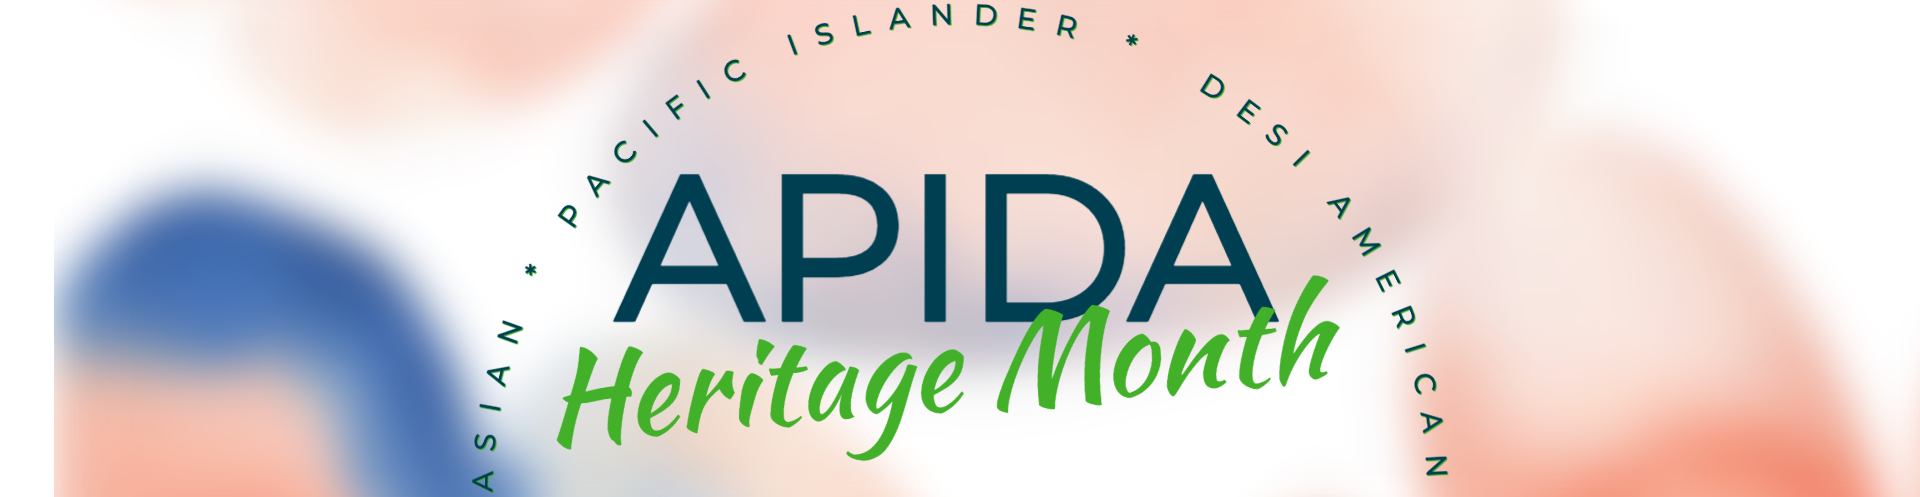 Join KSU in celebrating APIDA Heritage Month